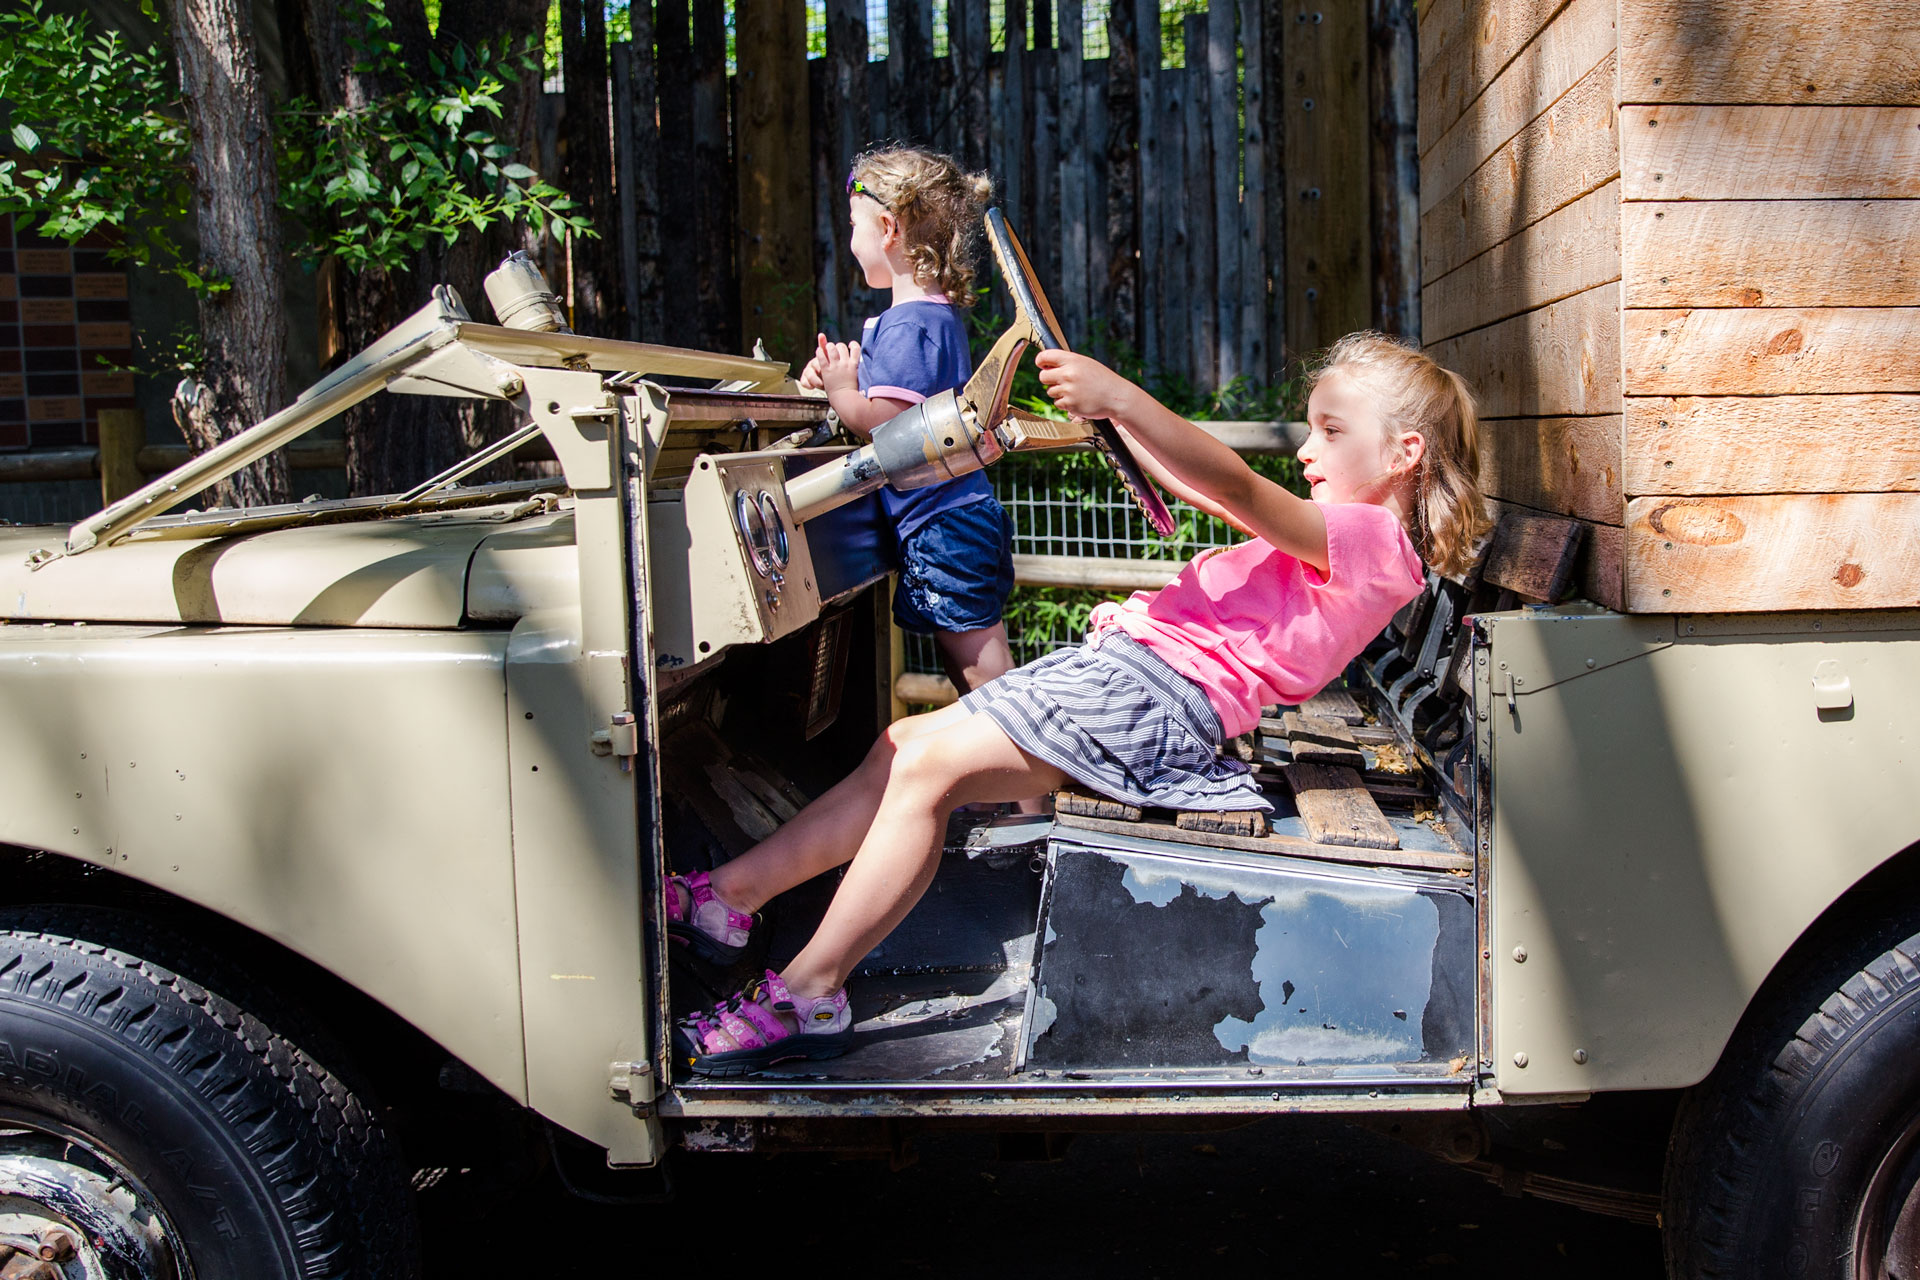 Two young girls sitting and playin g in a life-sized pretend jeep at the zoo